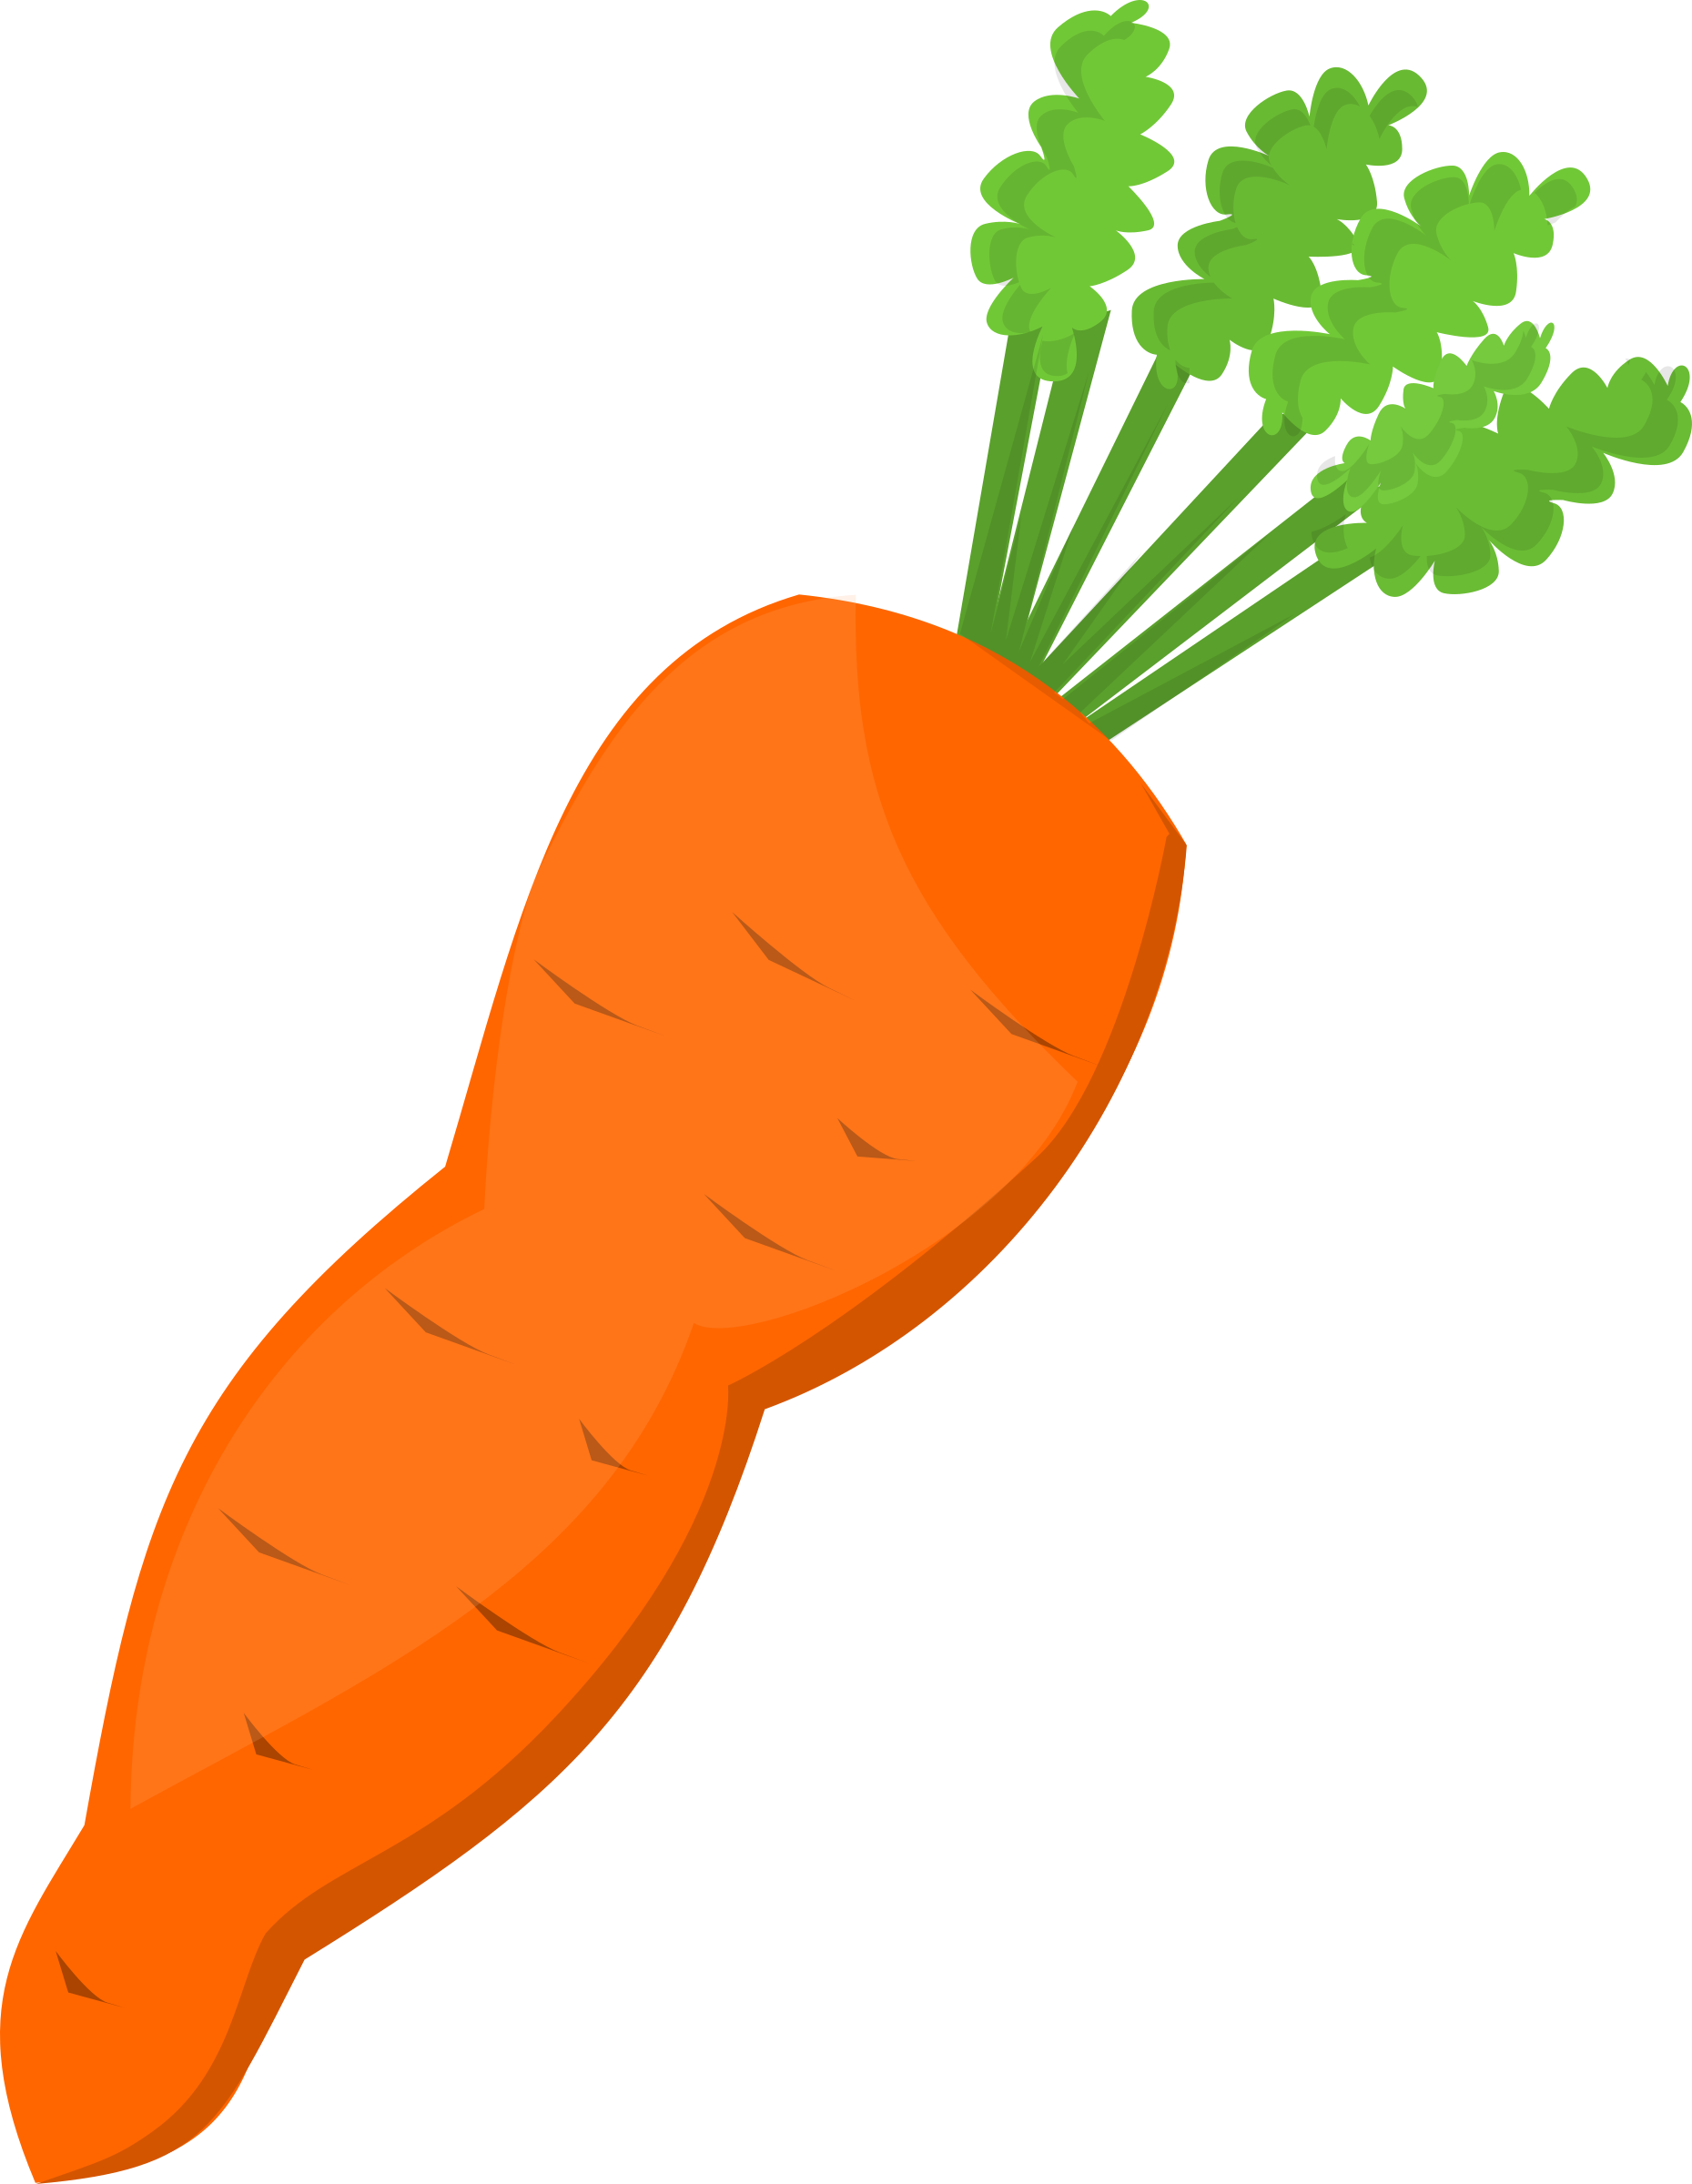 Carrot clipart jpg free download Free Carrot Cliparts, Download Free Clip Art, Free Clip Art on ... jpg free download